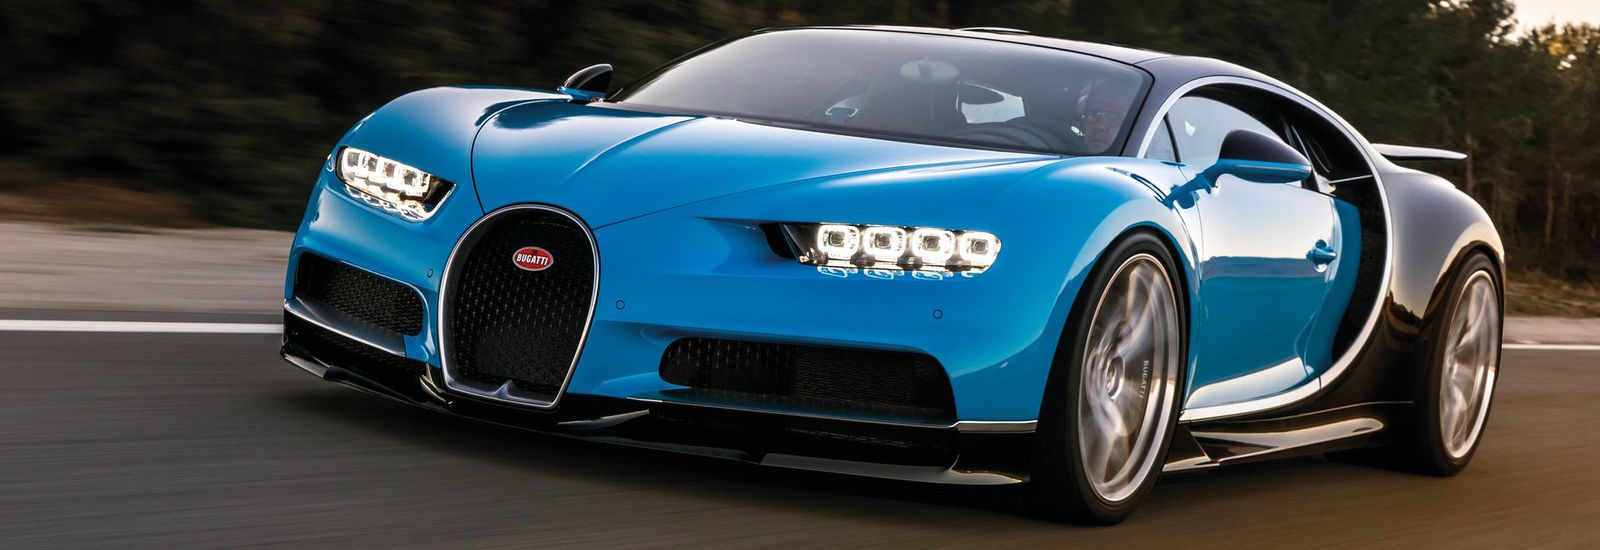 bugatti chiron vs veyron speed stats comparison carwow. Black Bedroom Furniture Sets. Home Design Ideas